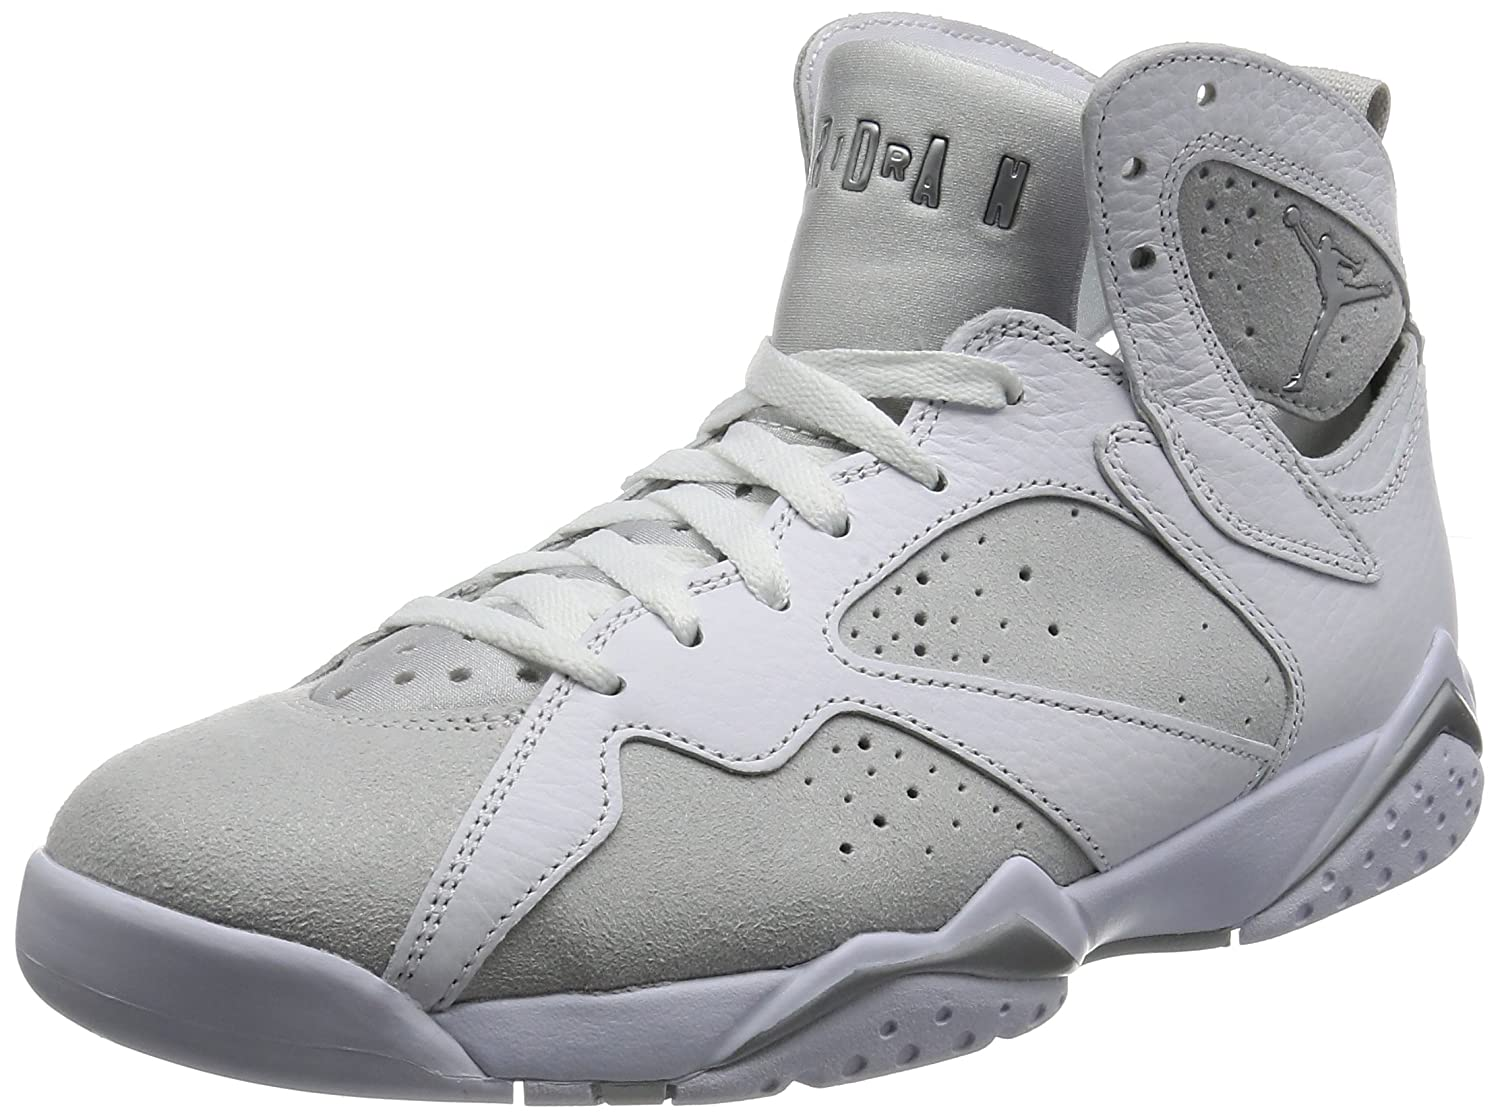 Nike AIR Jordan 7 Retro 'Pure Money' - 304775-120 - Size 10